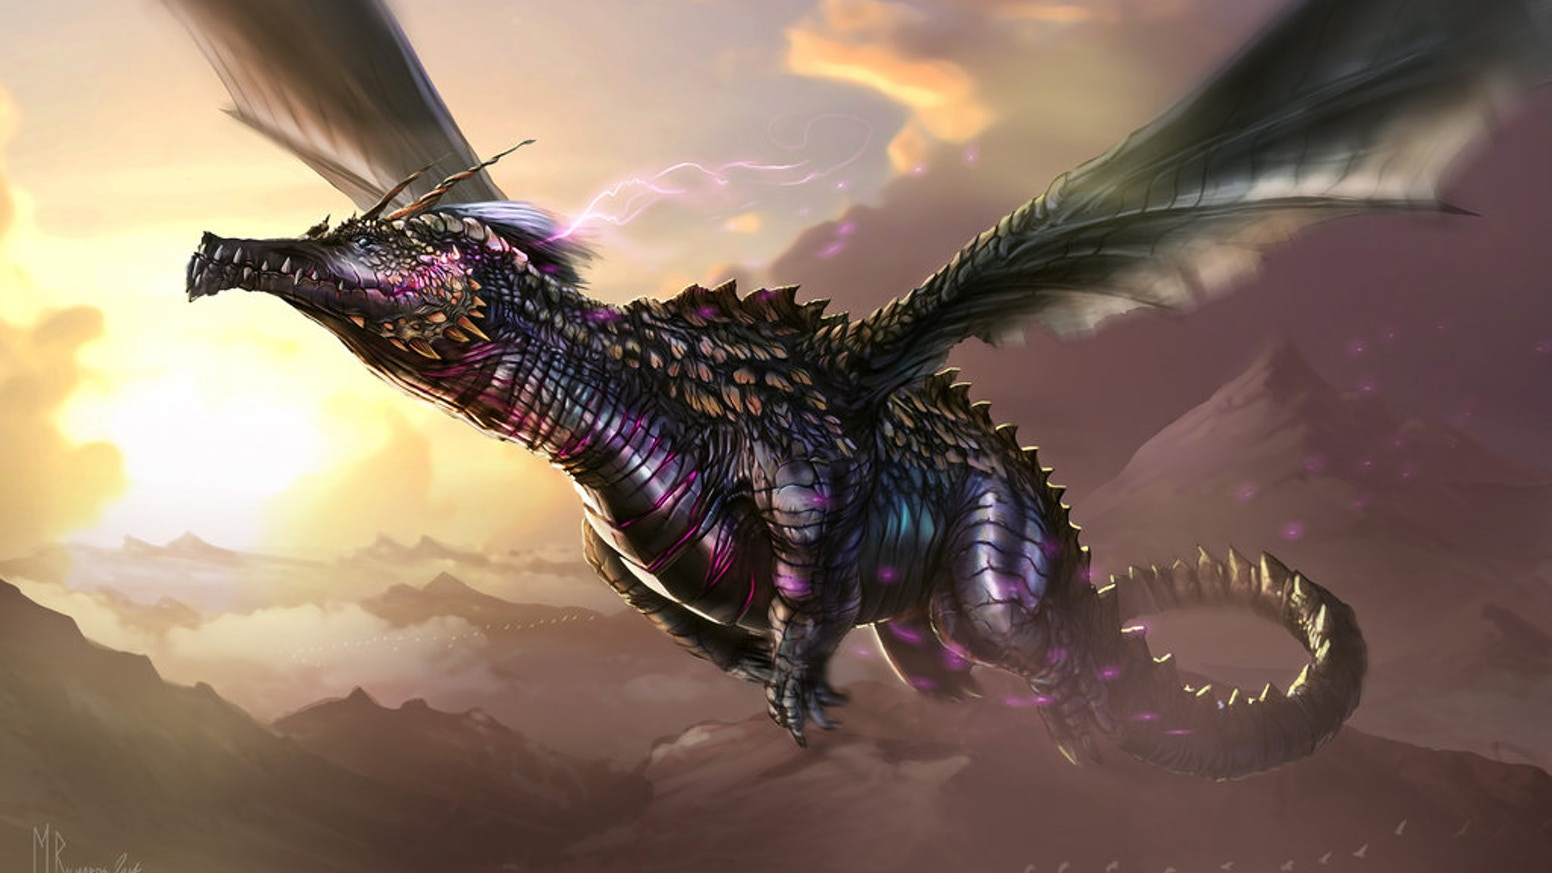 In The Company of Dragons (Pathfinder Roleplaying Game) by Steve